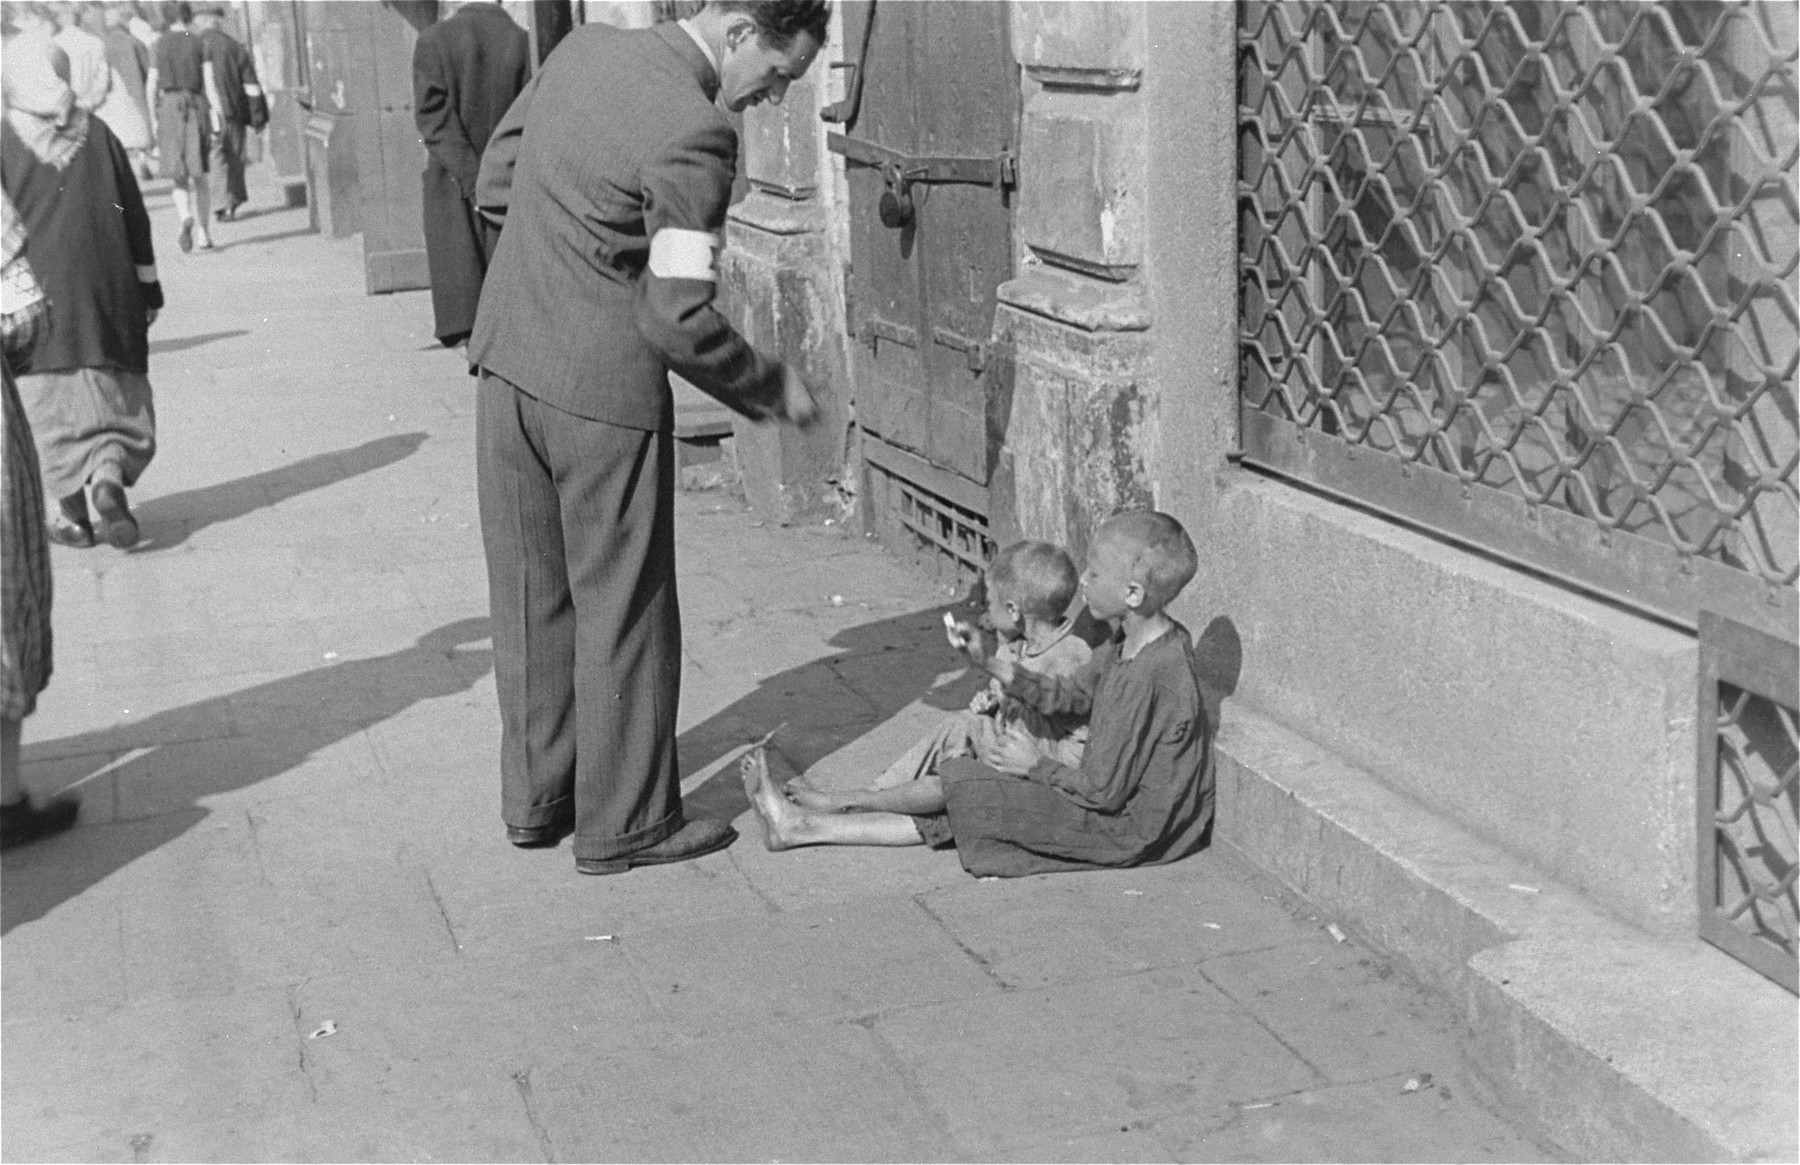 A man stops to help two destitute children on the street in the Warsaw ghetto.